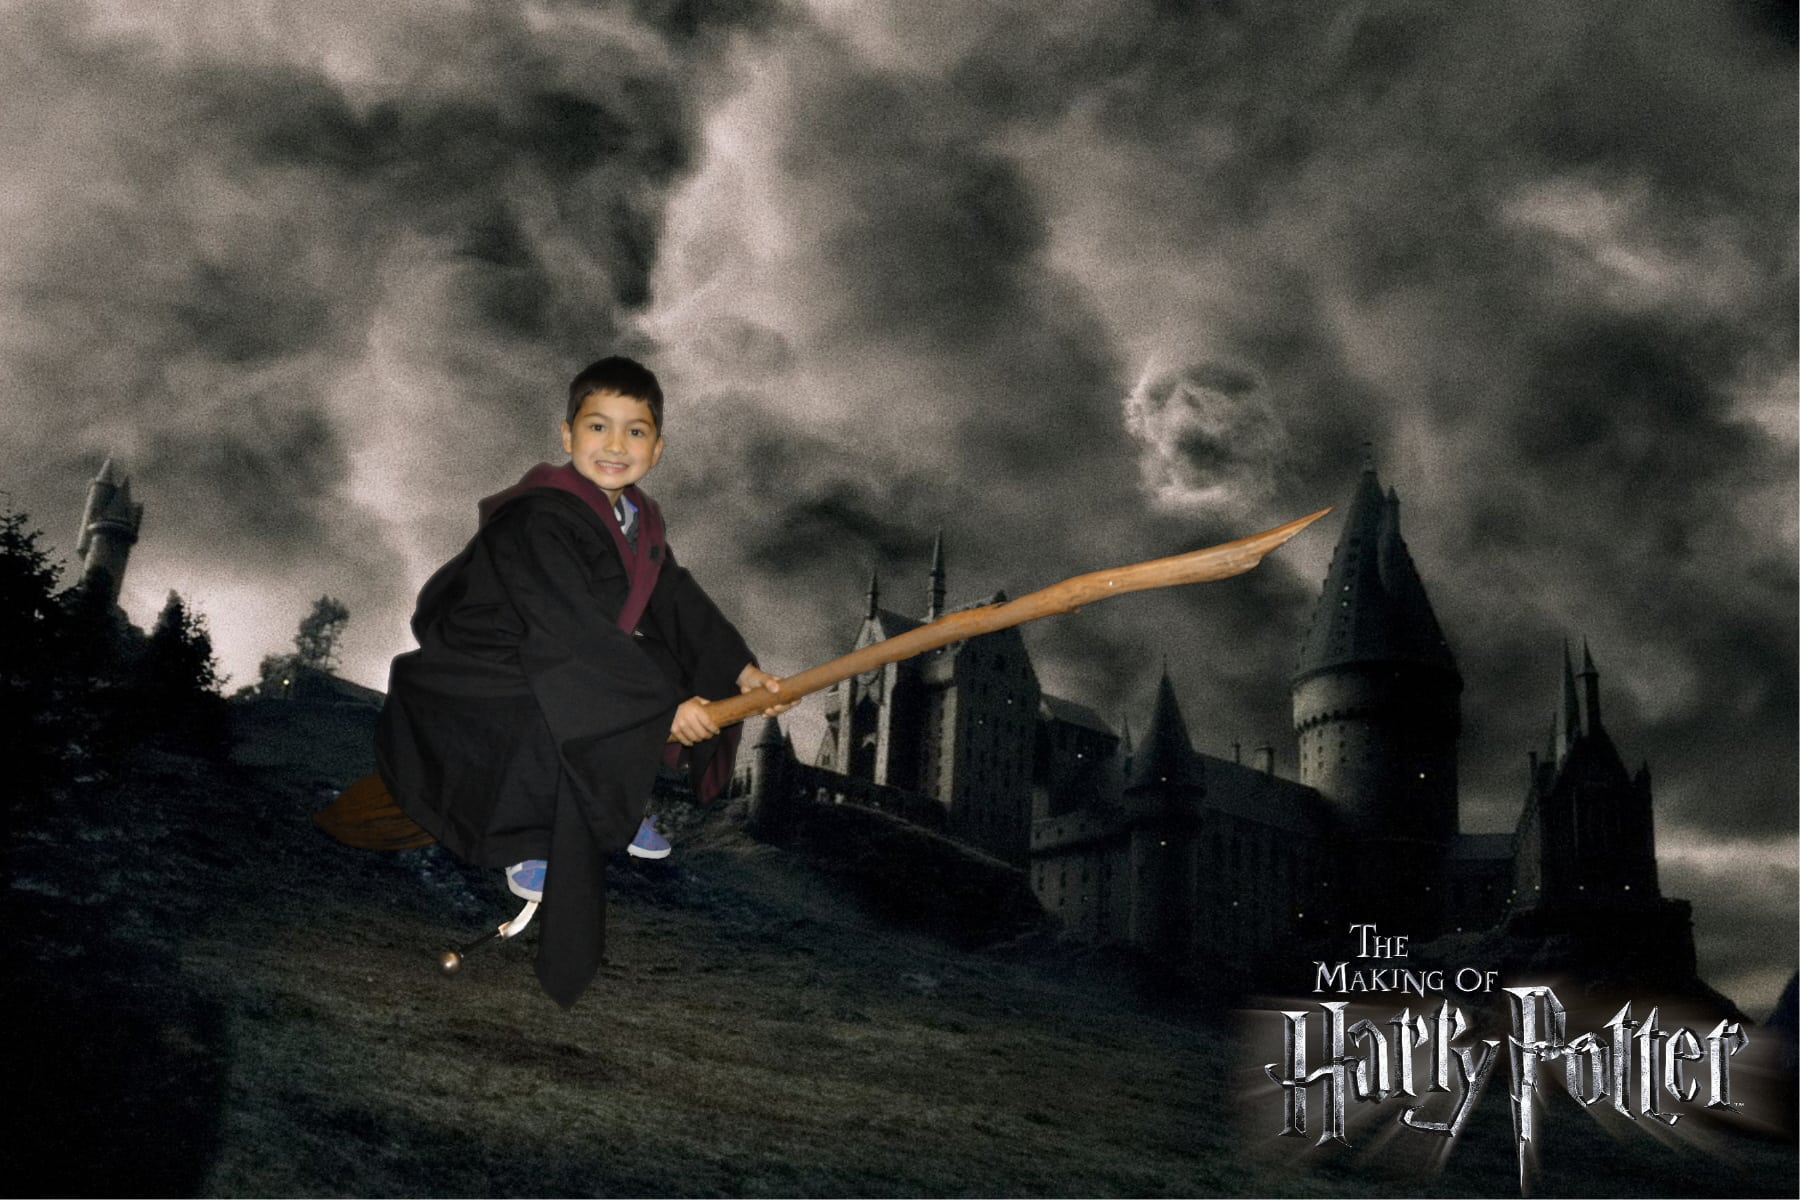 Ethan-Harry-Potter-blog